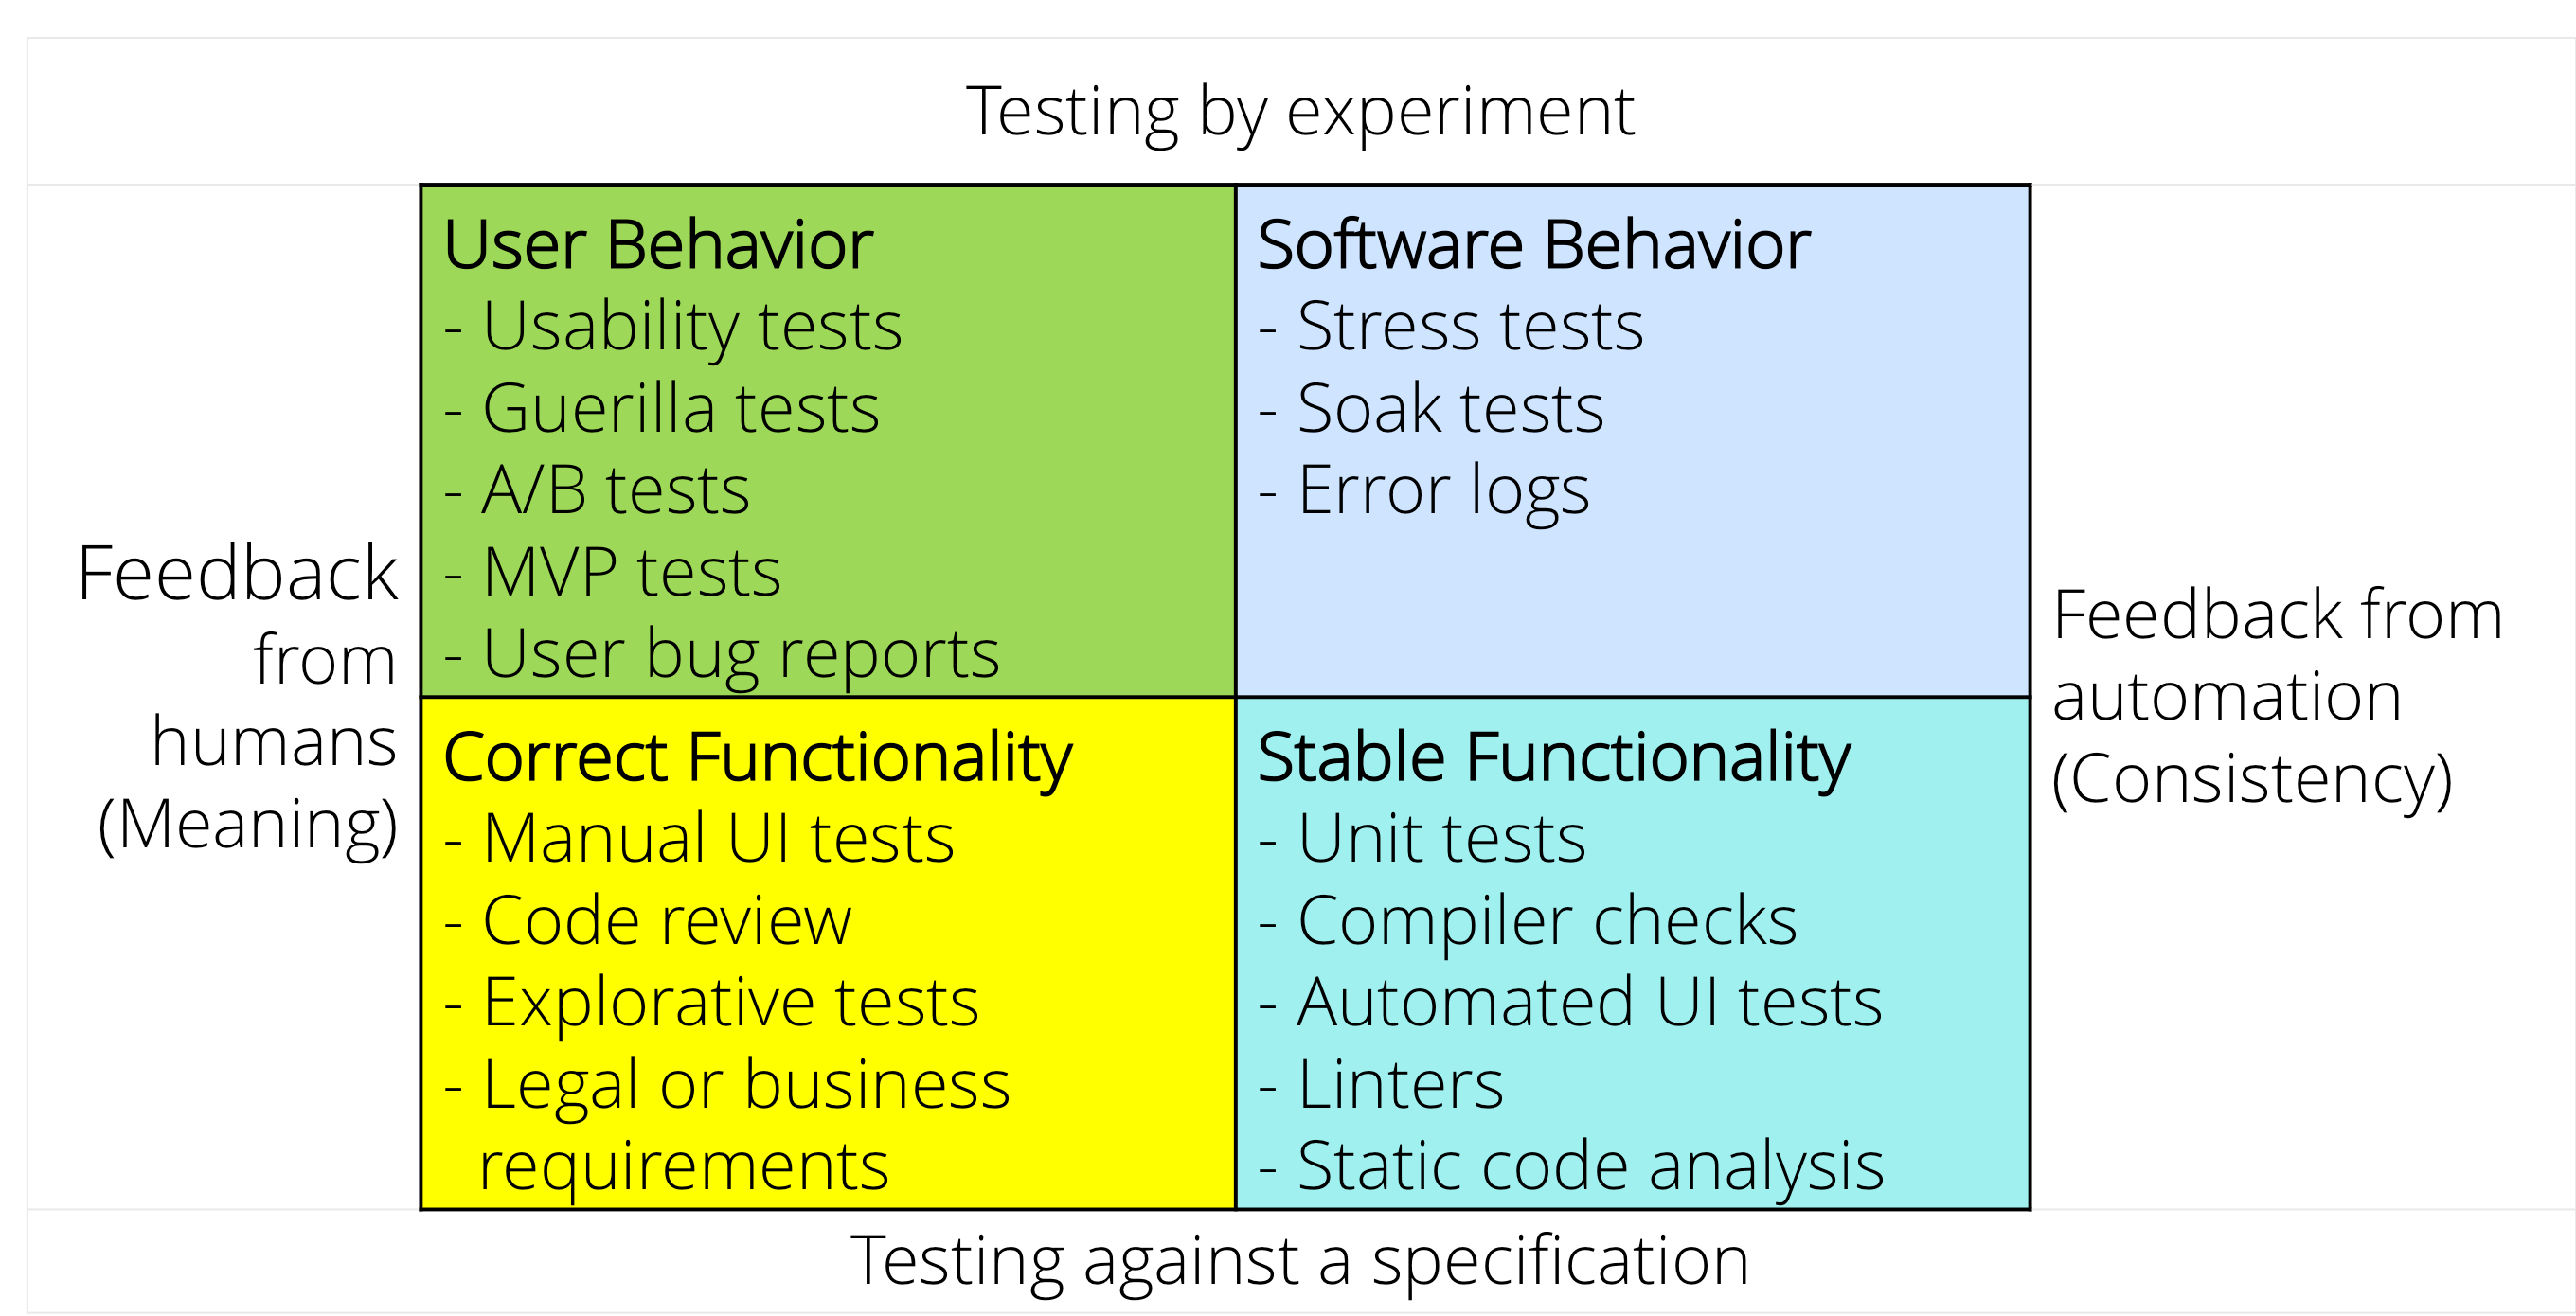 This image groups software testing techniques into four quadrants, based on whether they can be automated and on whether they are tied to a formal specification. By BeyondJava.net.